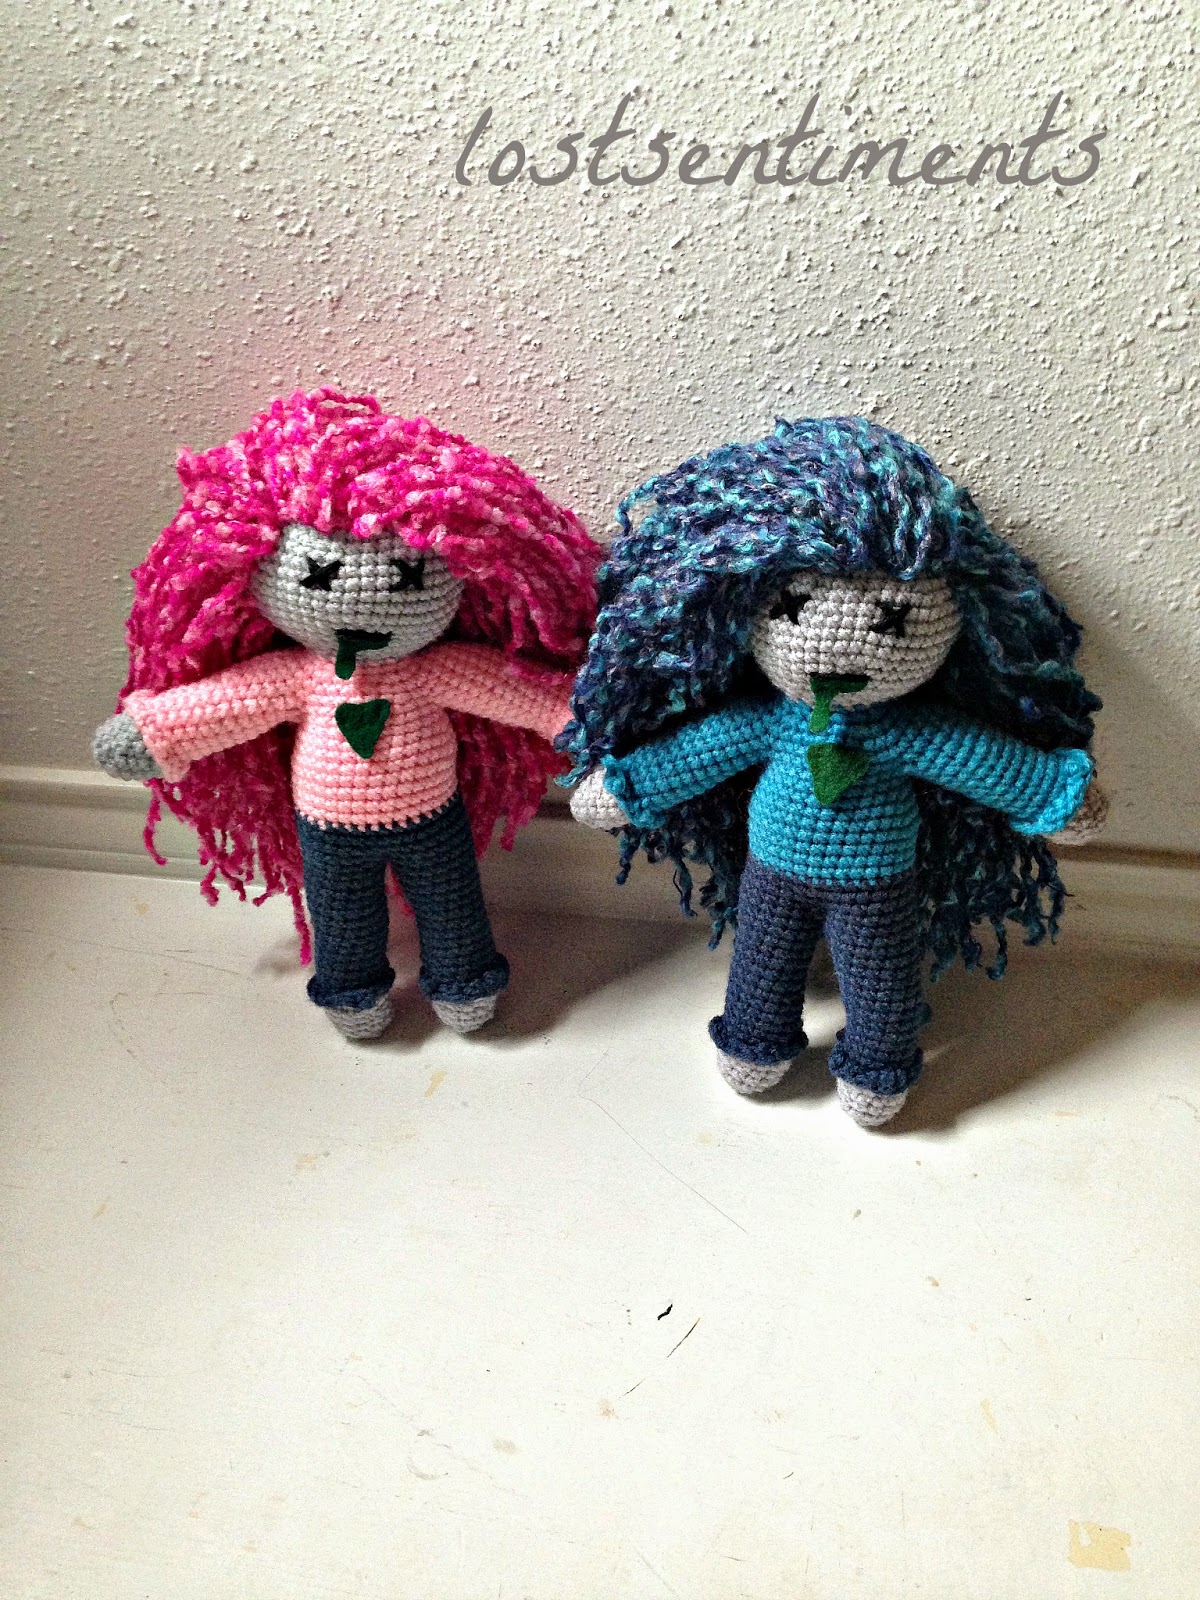 Large Amigurumi Ball Pattern : lostsentiments: Free Amigurumi Pattern for Body of Large Doll